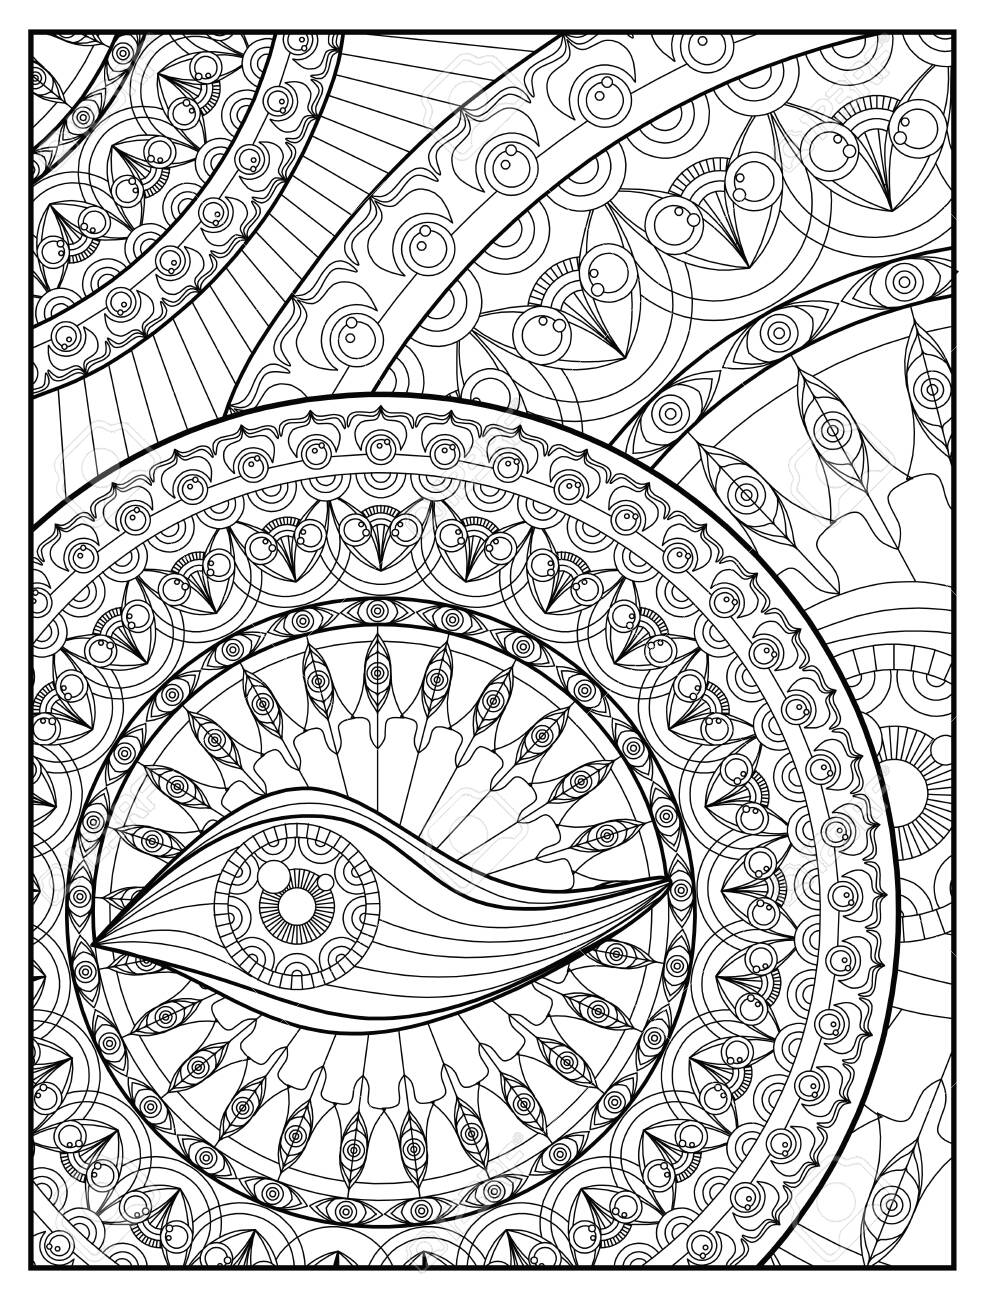 - Mandala Coloring Page For Adult Relaxation Mandala Design Eye